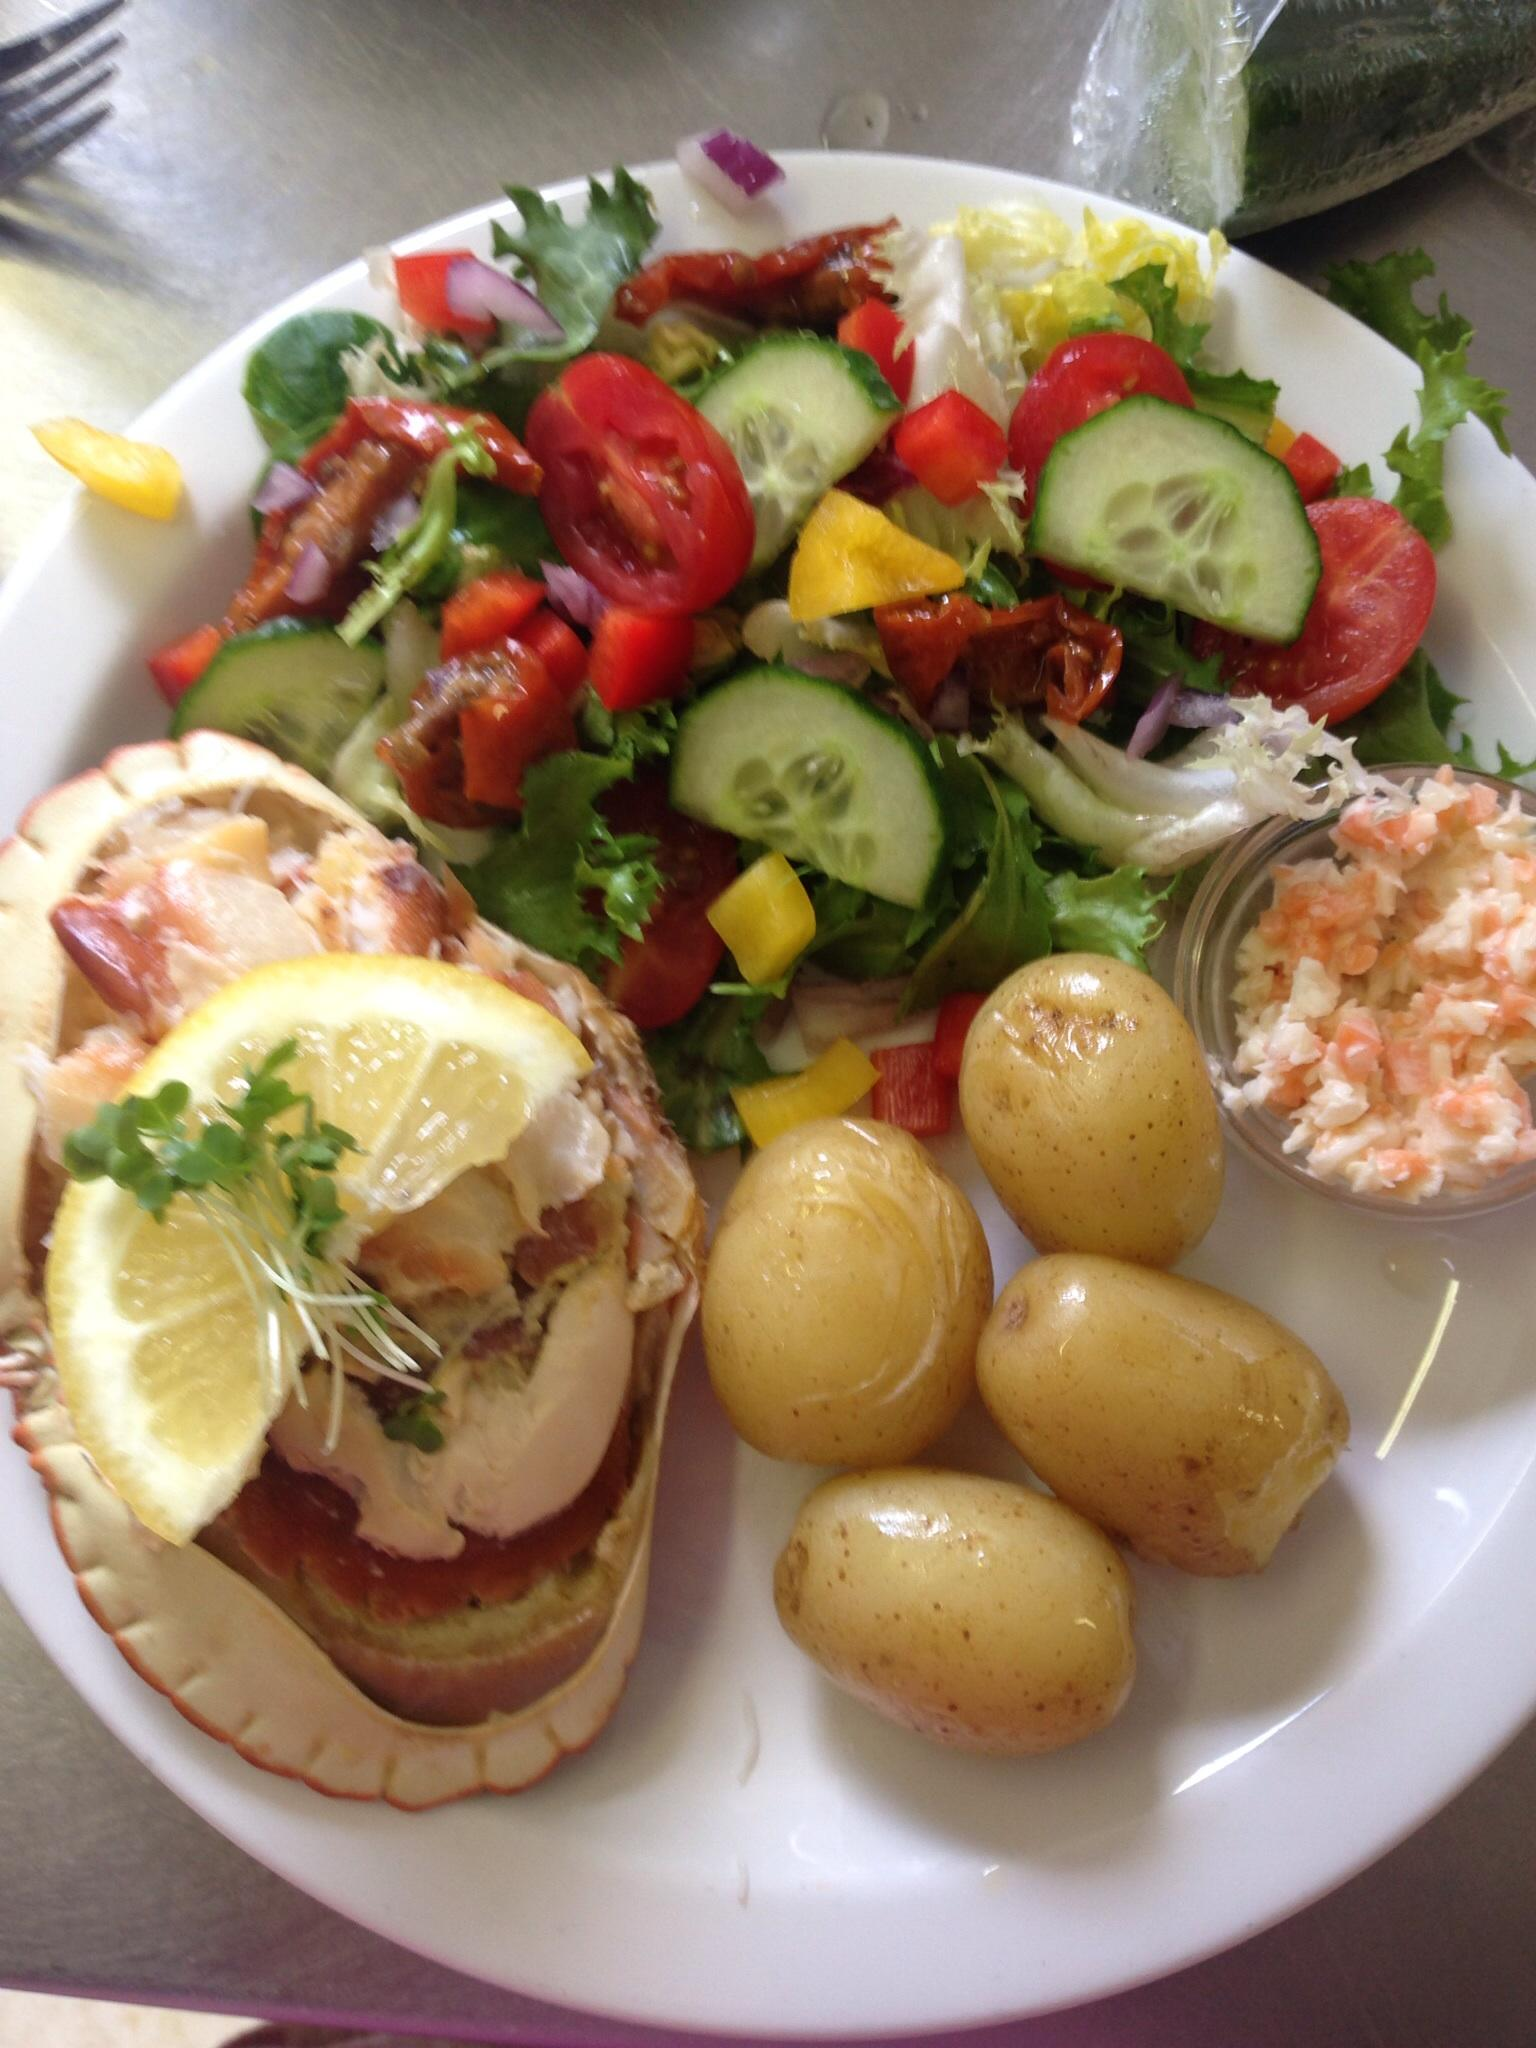 Where to eat Cafe food in Cromer: The Best Restaurants and Bars